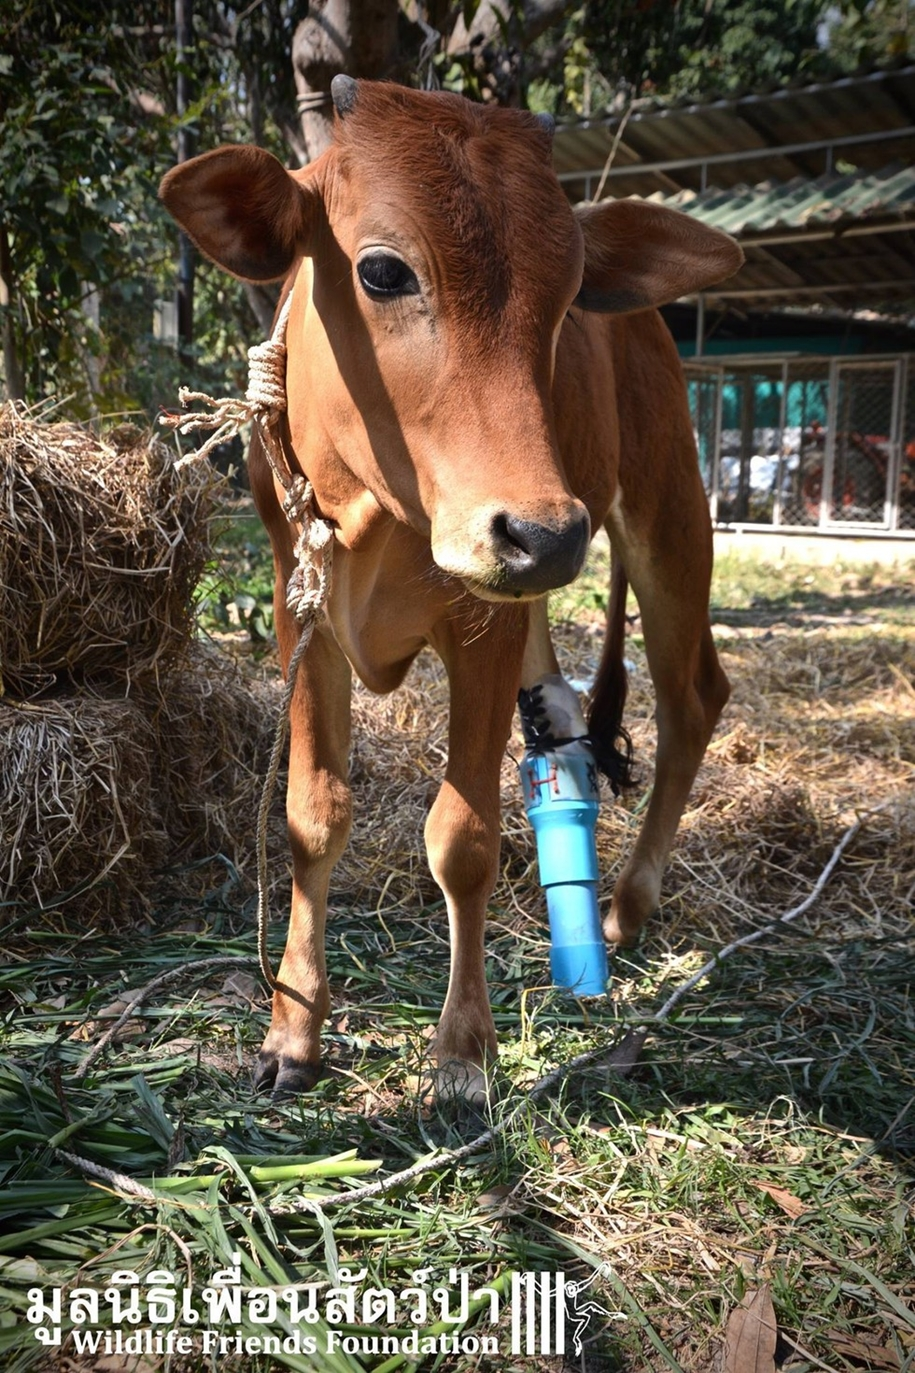 unusual-friendship-of-a-giant-turtle-and-calf-with-prosthesis-02